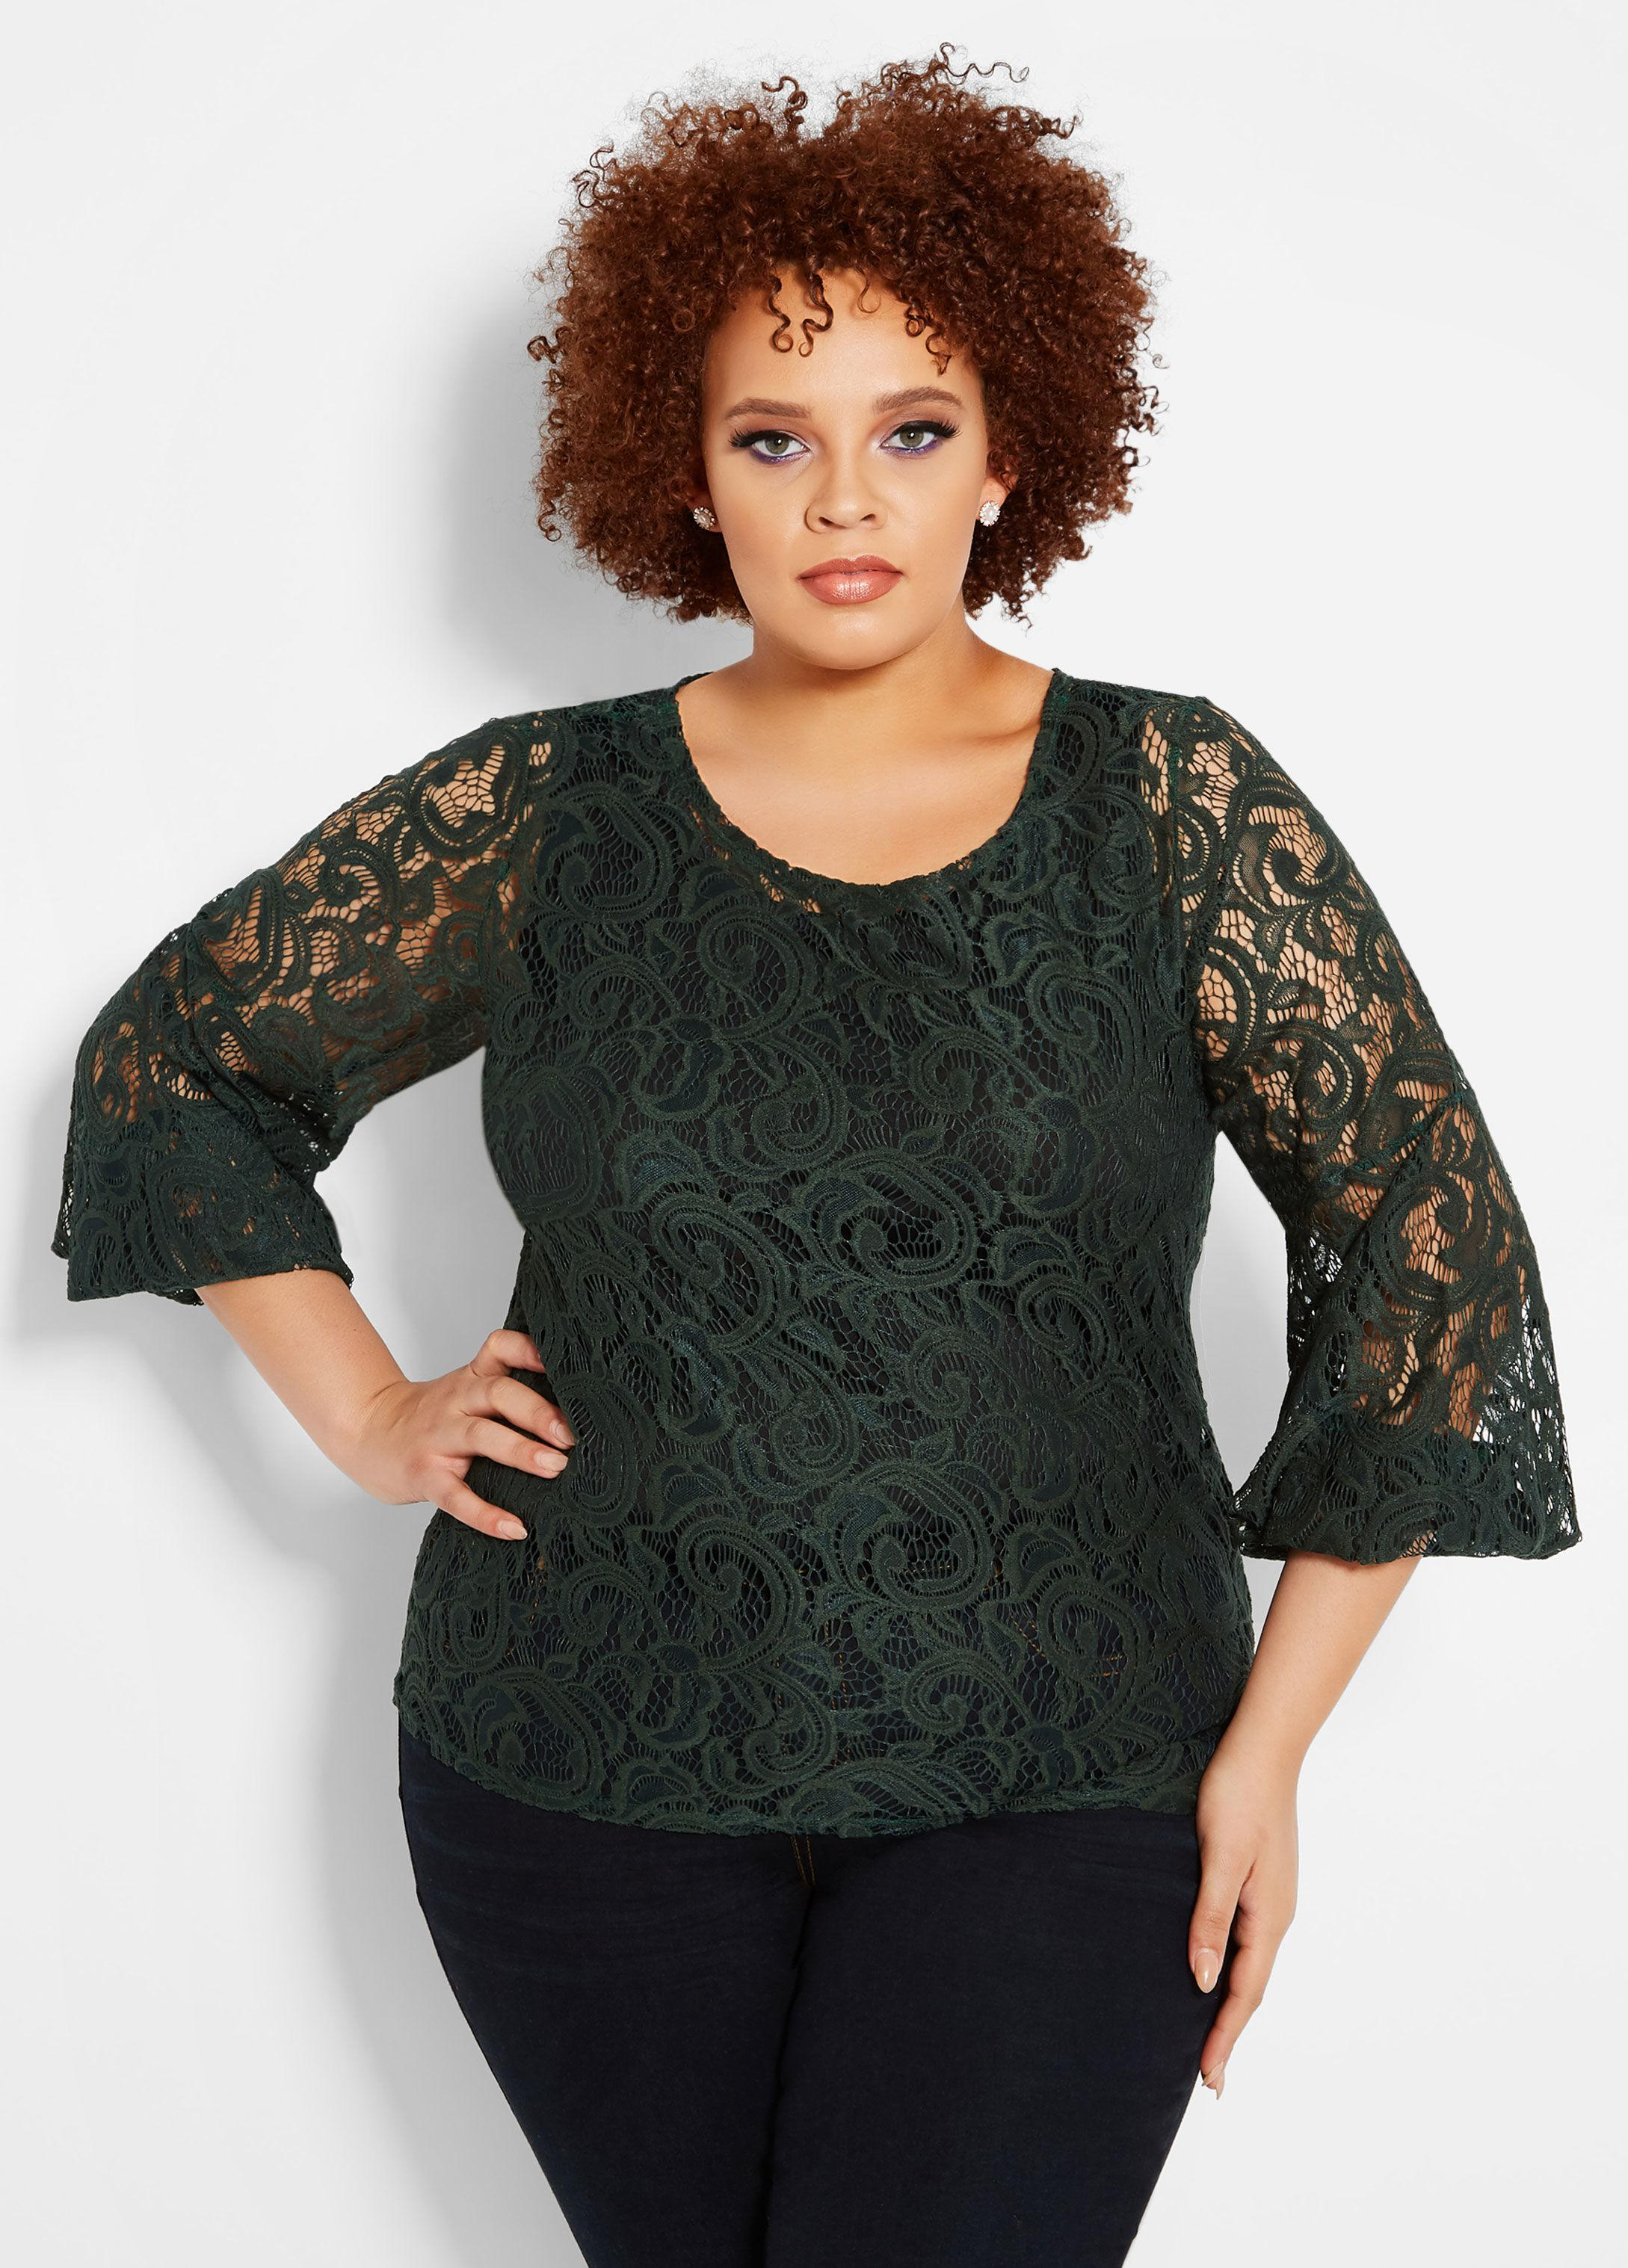 954c8bcf686 Lyst - Ashley Stewart Plus Size Sheer Lace Bubble Sleeve Top